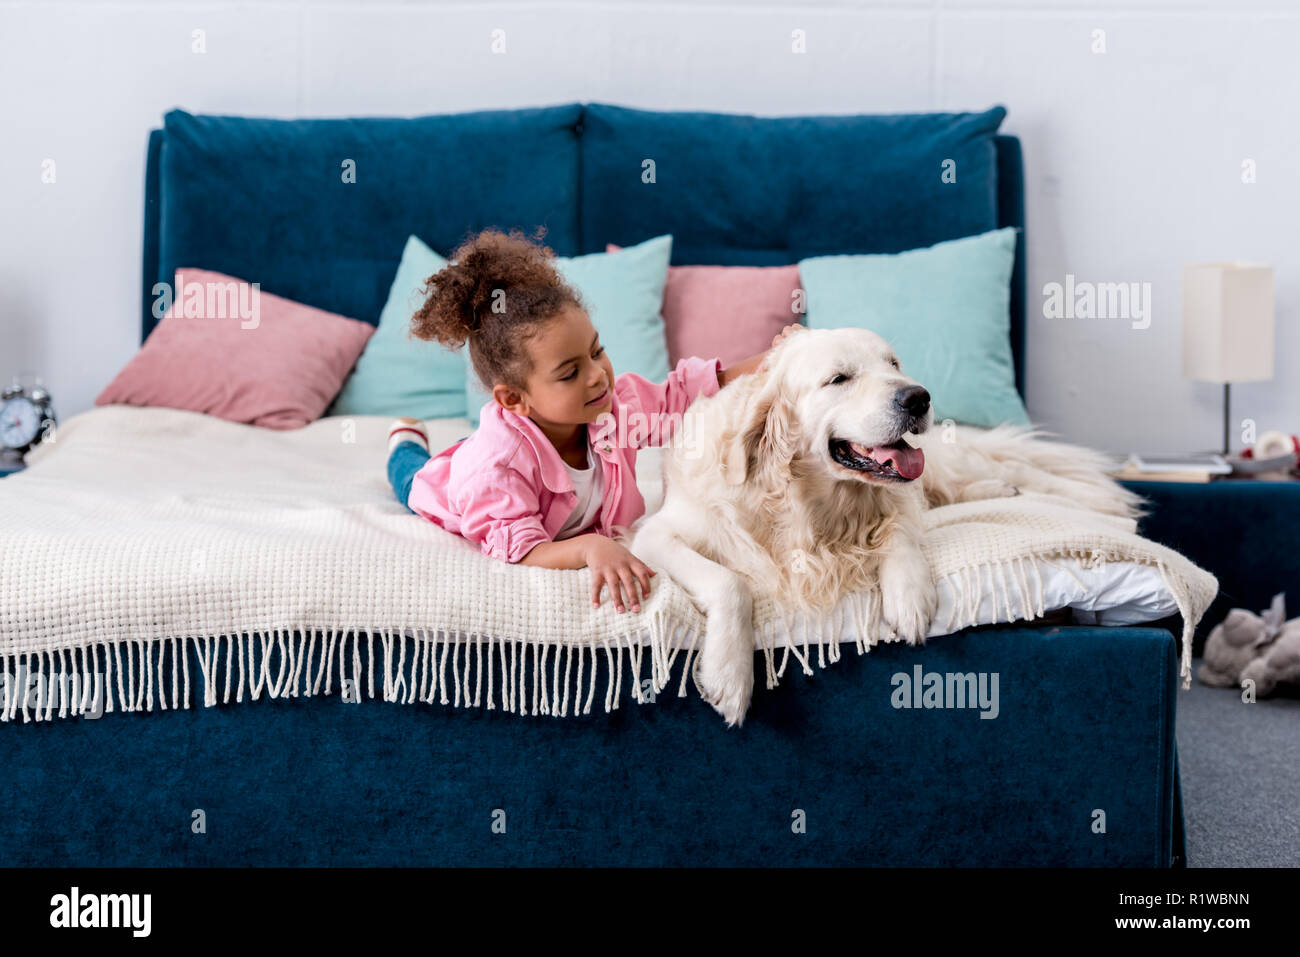 Adorable african american child lying on the bed and scratching the back of a dog - Stock Image